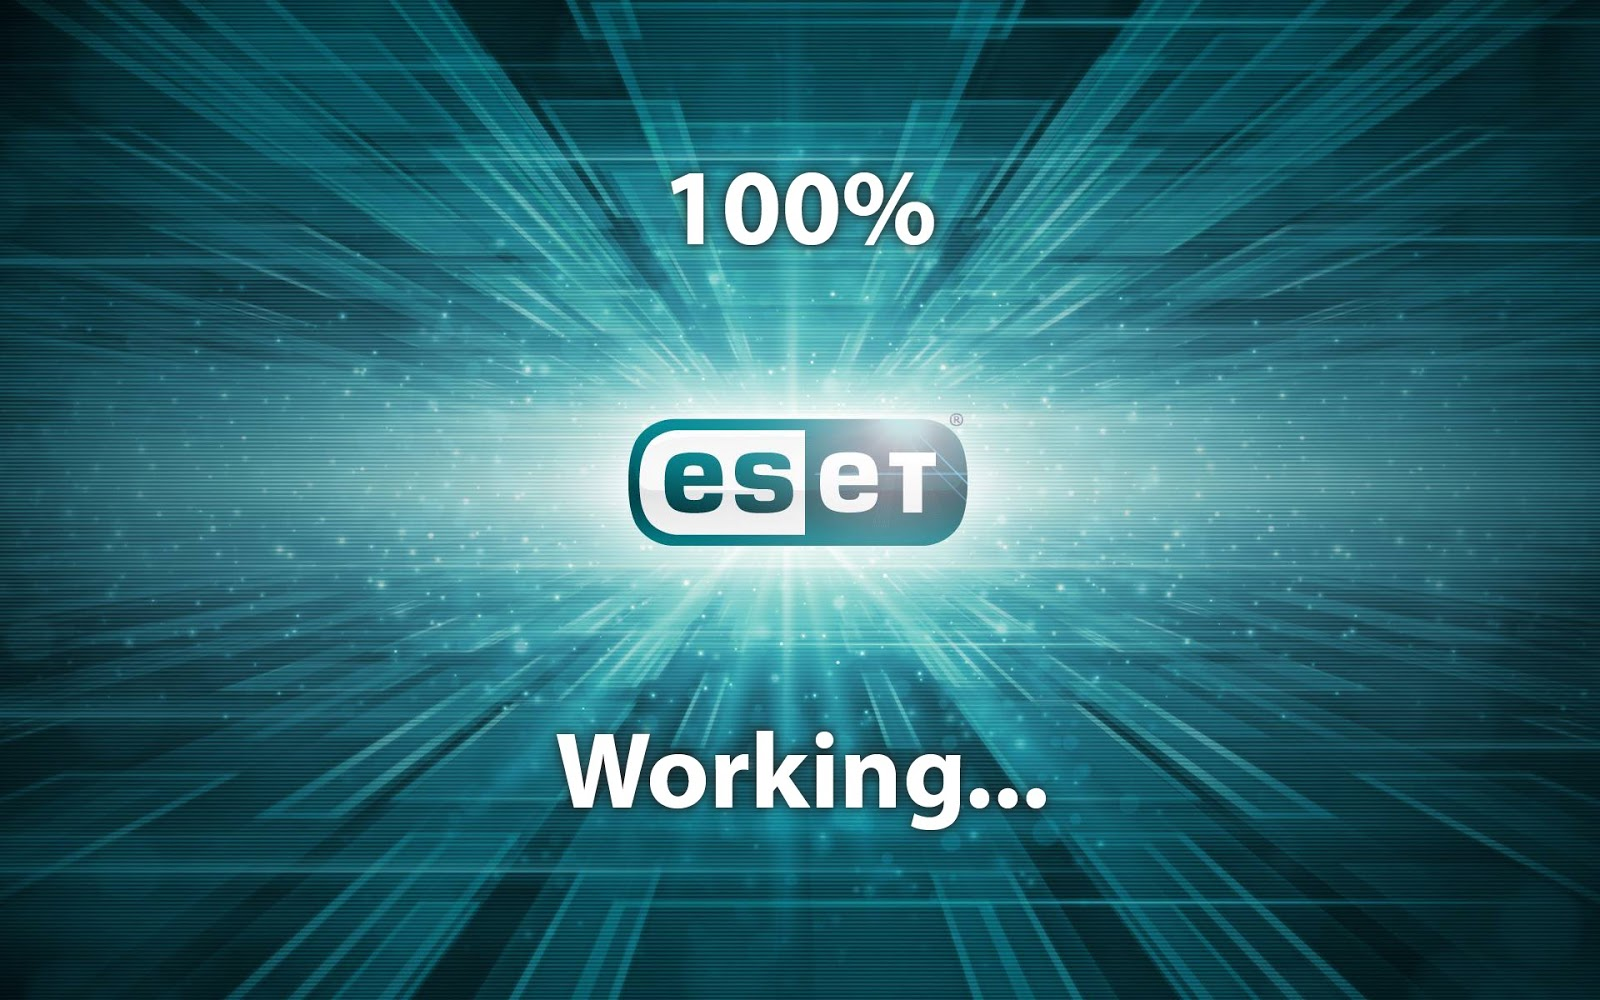 eset smart security 10 trial license key 2018